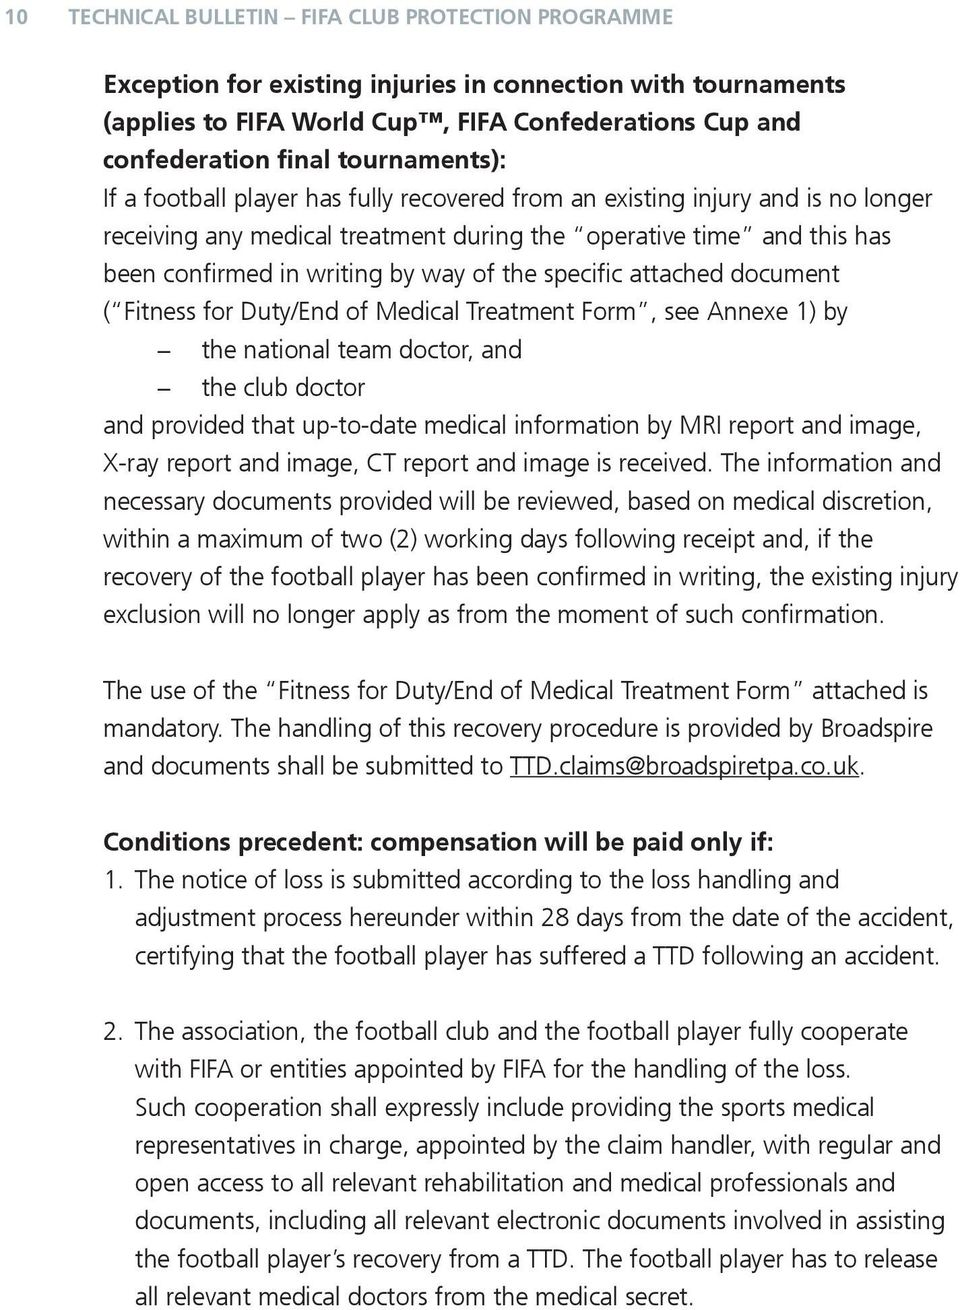 attached document ( Fitness for Duty/End Medical Treatment Form, see Annexe 1) by national team doctor, club doctor provided that up-to-date medical information by MRI report image, X-ray report